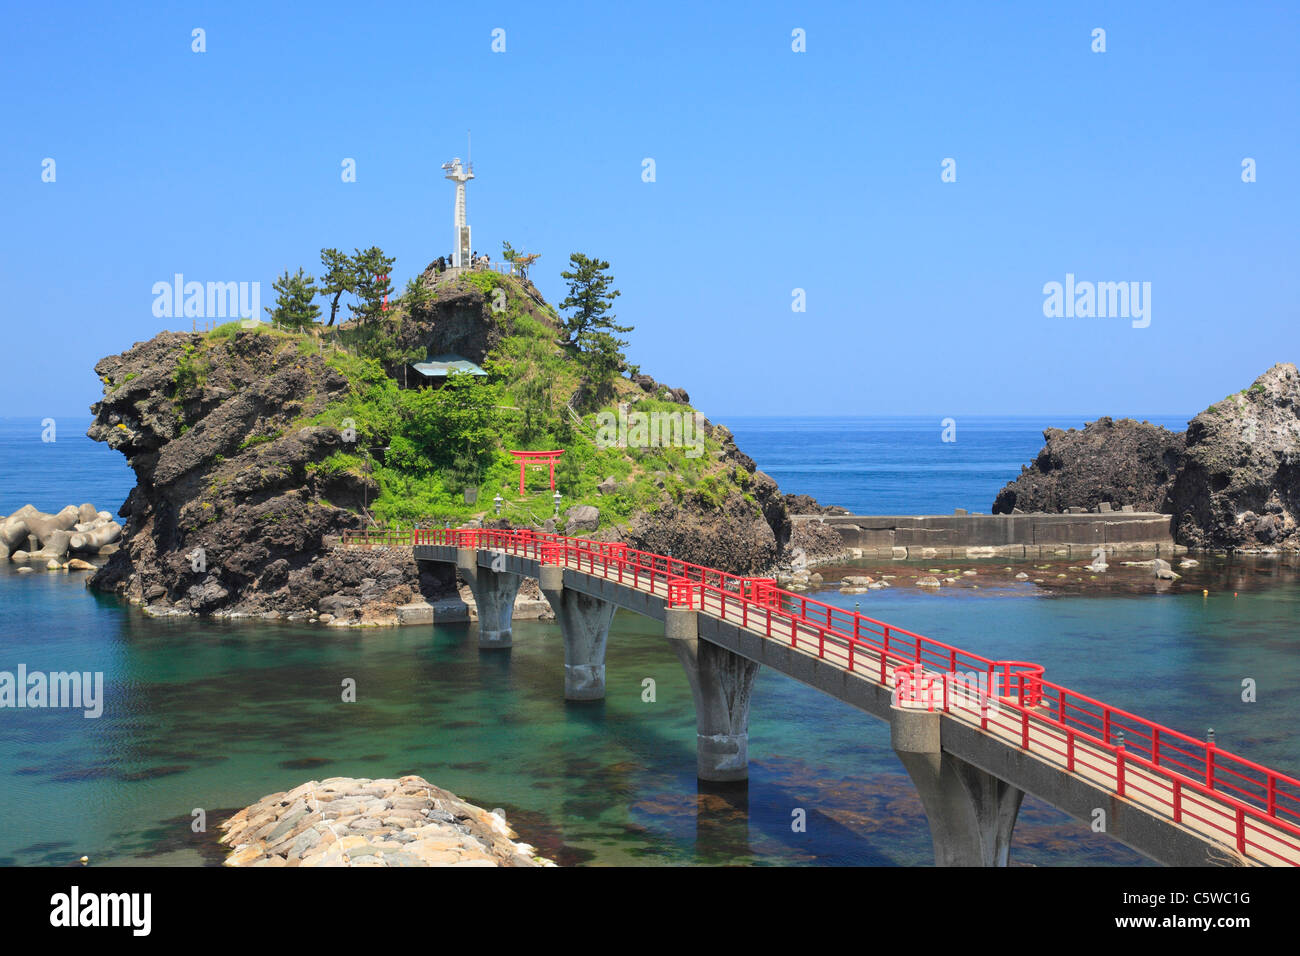 Nou Beach and Benten Rock, Itoigawa, Niigata, Japan - Stock Image